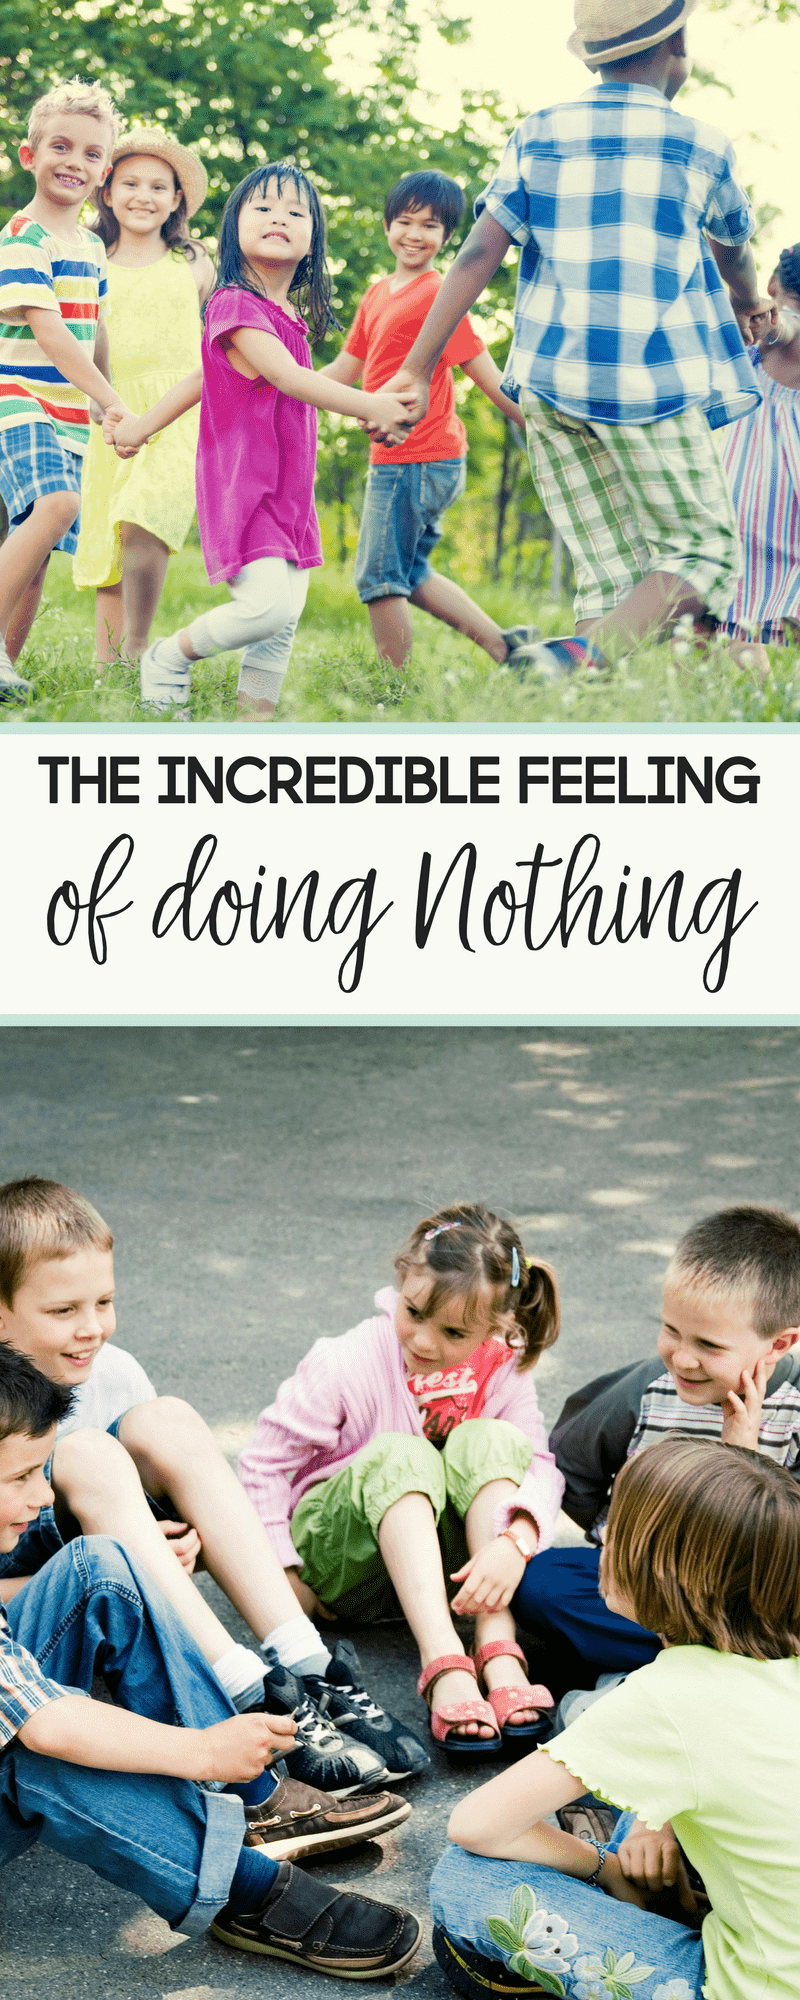 How often do you let your kids get bored and do nothing? There is an incredible feeling that comes along with doing absolutely nothing. Try it some time.